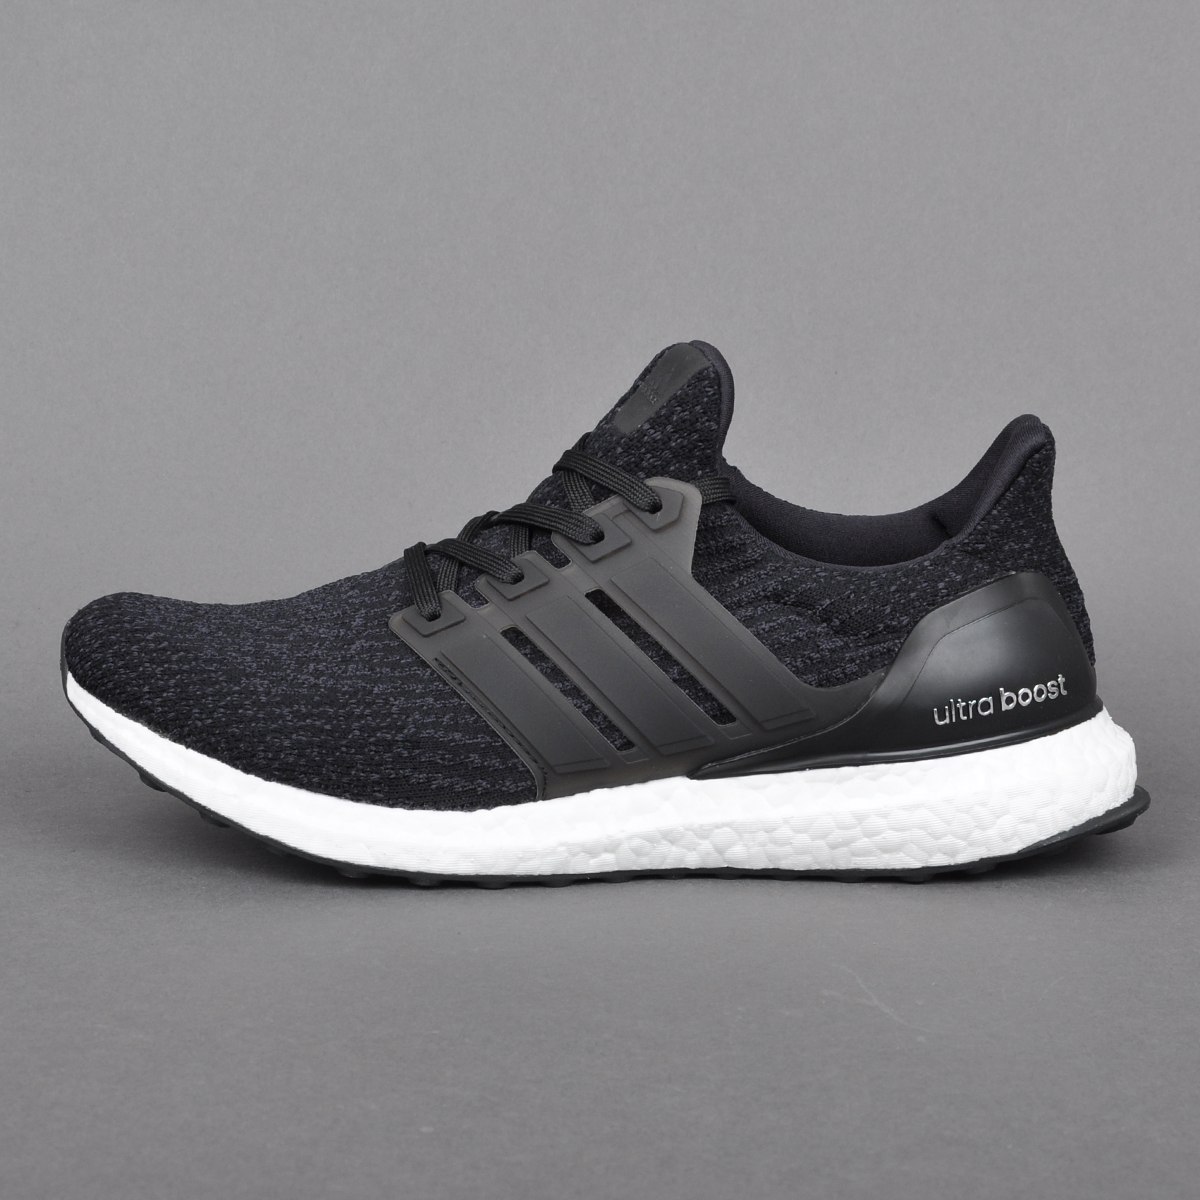 Adidas Shoes Discount Marketplace Fake